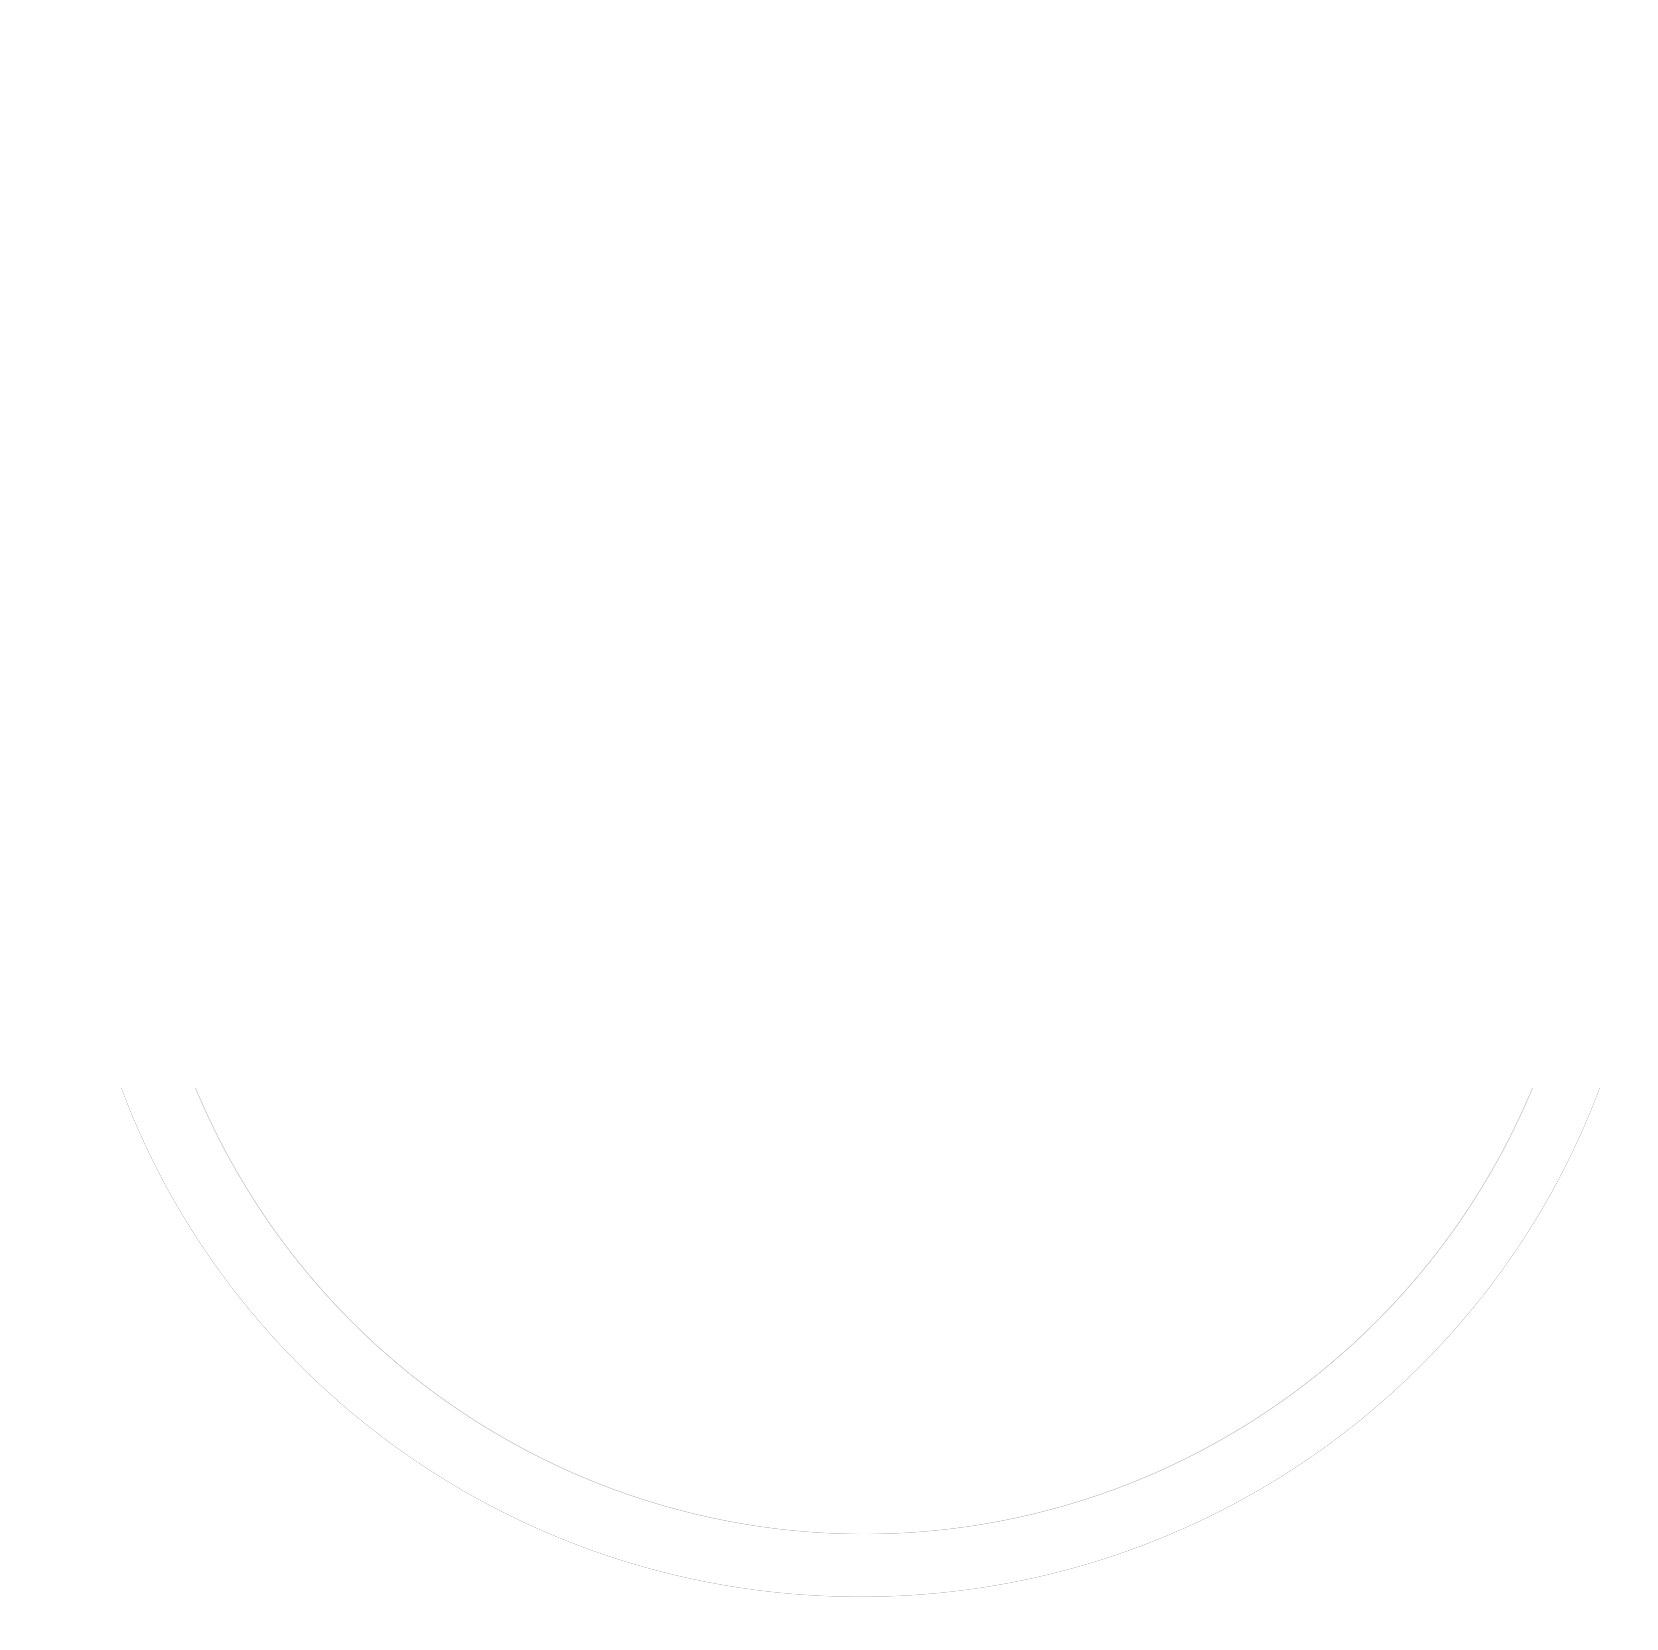 Highland Grand Dancers